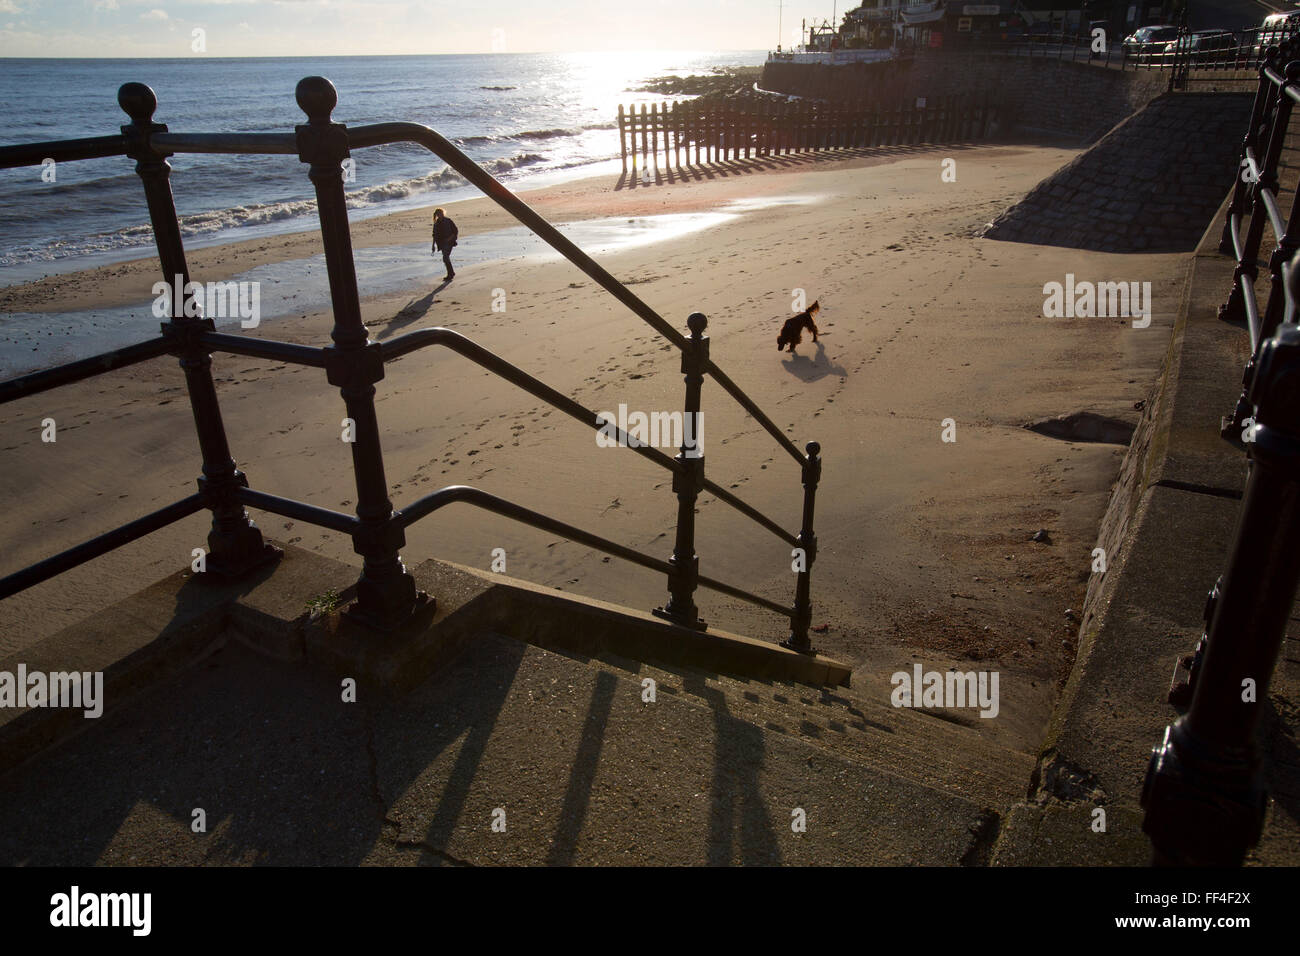 Isle of Wight, UK. 10th February, 2016. UK Weather, dog walking on the beach, late afternoon sunshine, Ventnor, - Stock Image